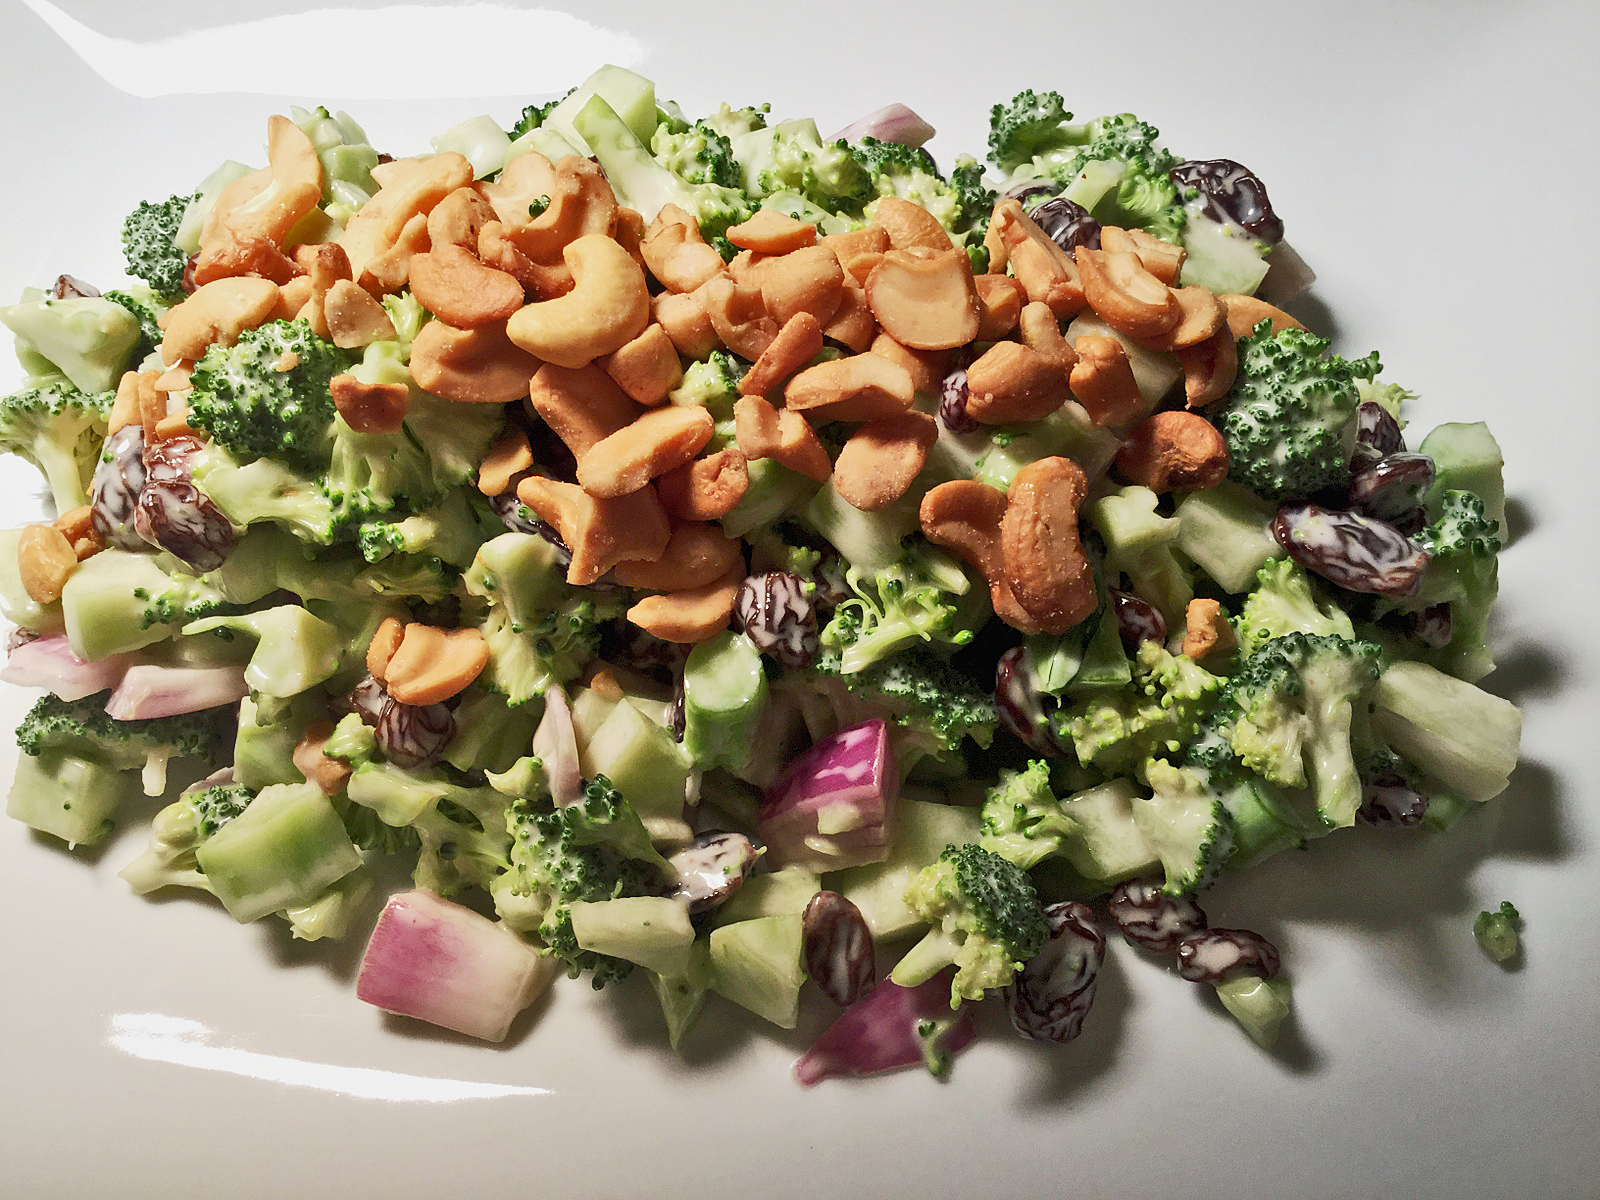 This raw broccoli salad recipe is made with raisins and topped with cashews!